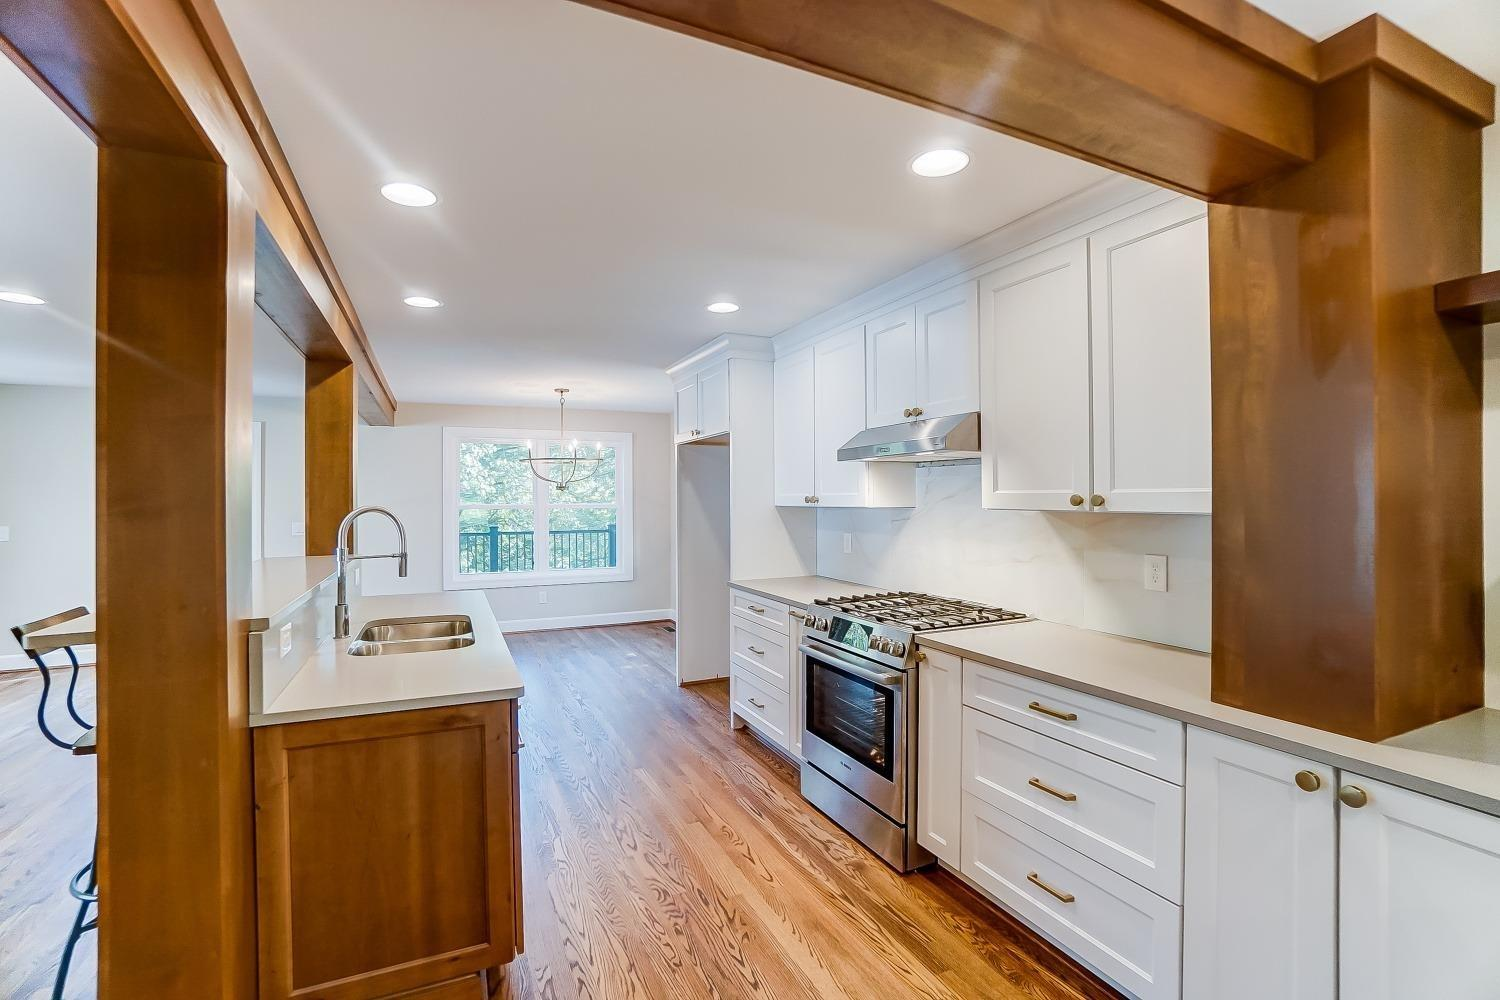 1st floor, kitchen with Bosch stainless appliances, mixed metals, wood cabinets with 5 piece drawers and soft closes. LED lighting. Microwave cubby and built-in garbage sorting drawer.